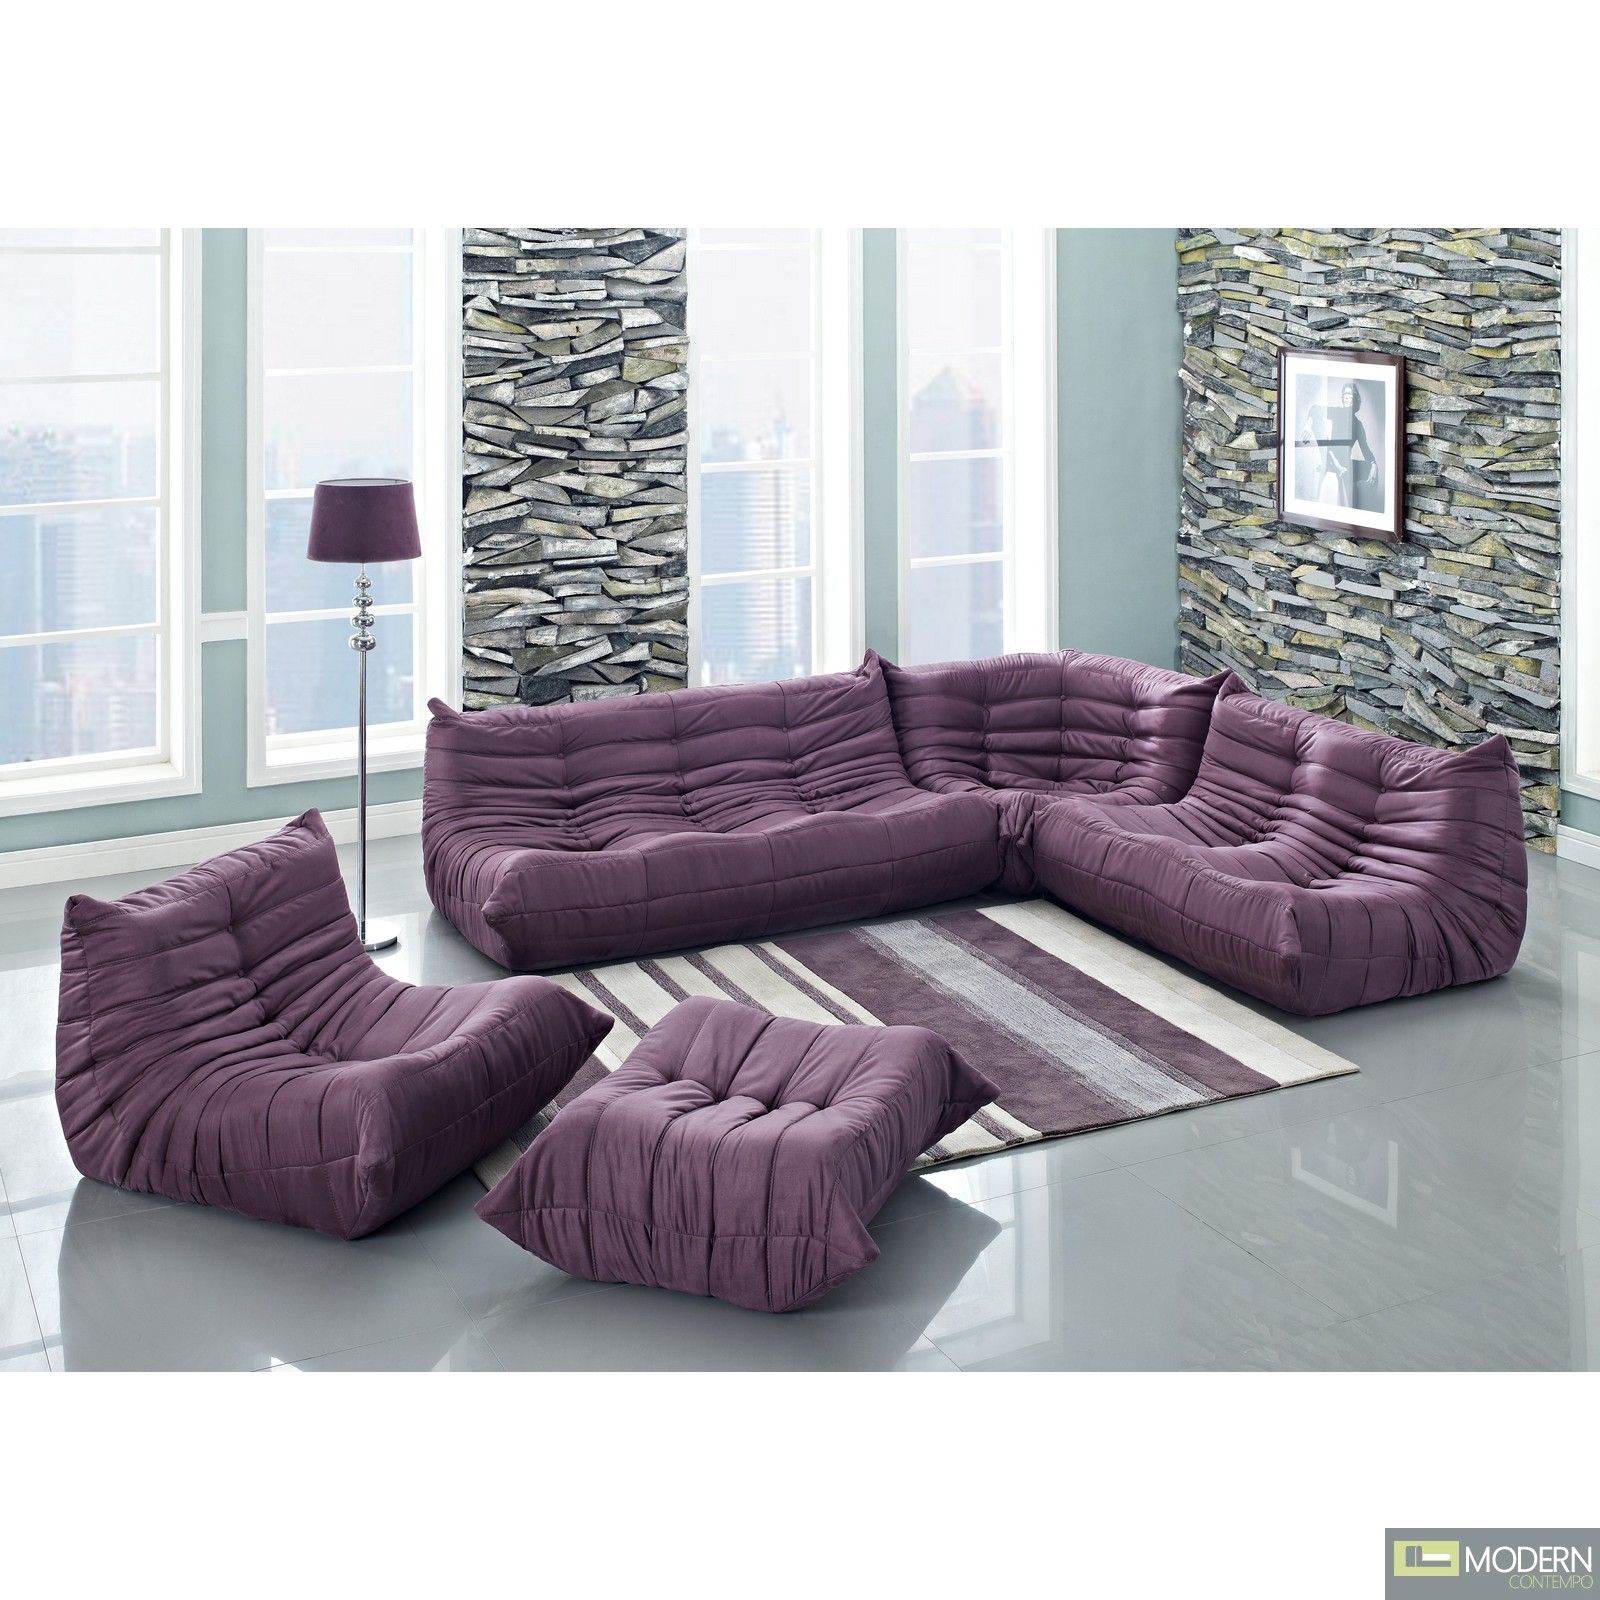 Waverunner Modular Sectional Sofa Inspired By Ligne Roset Togo